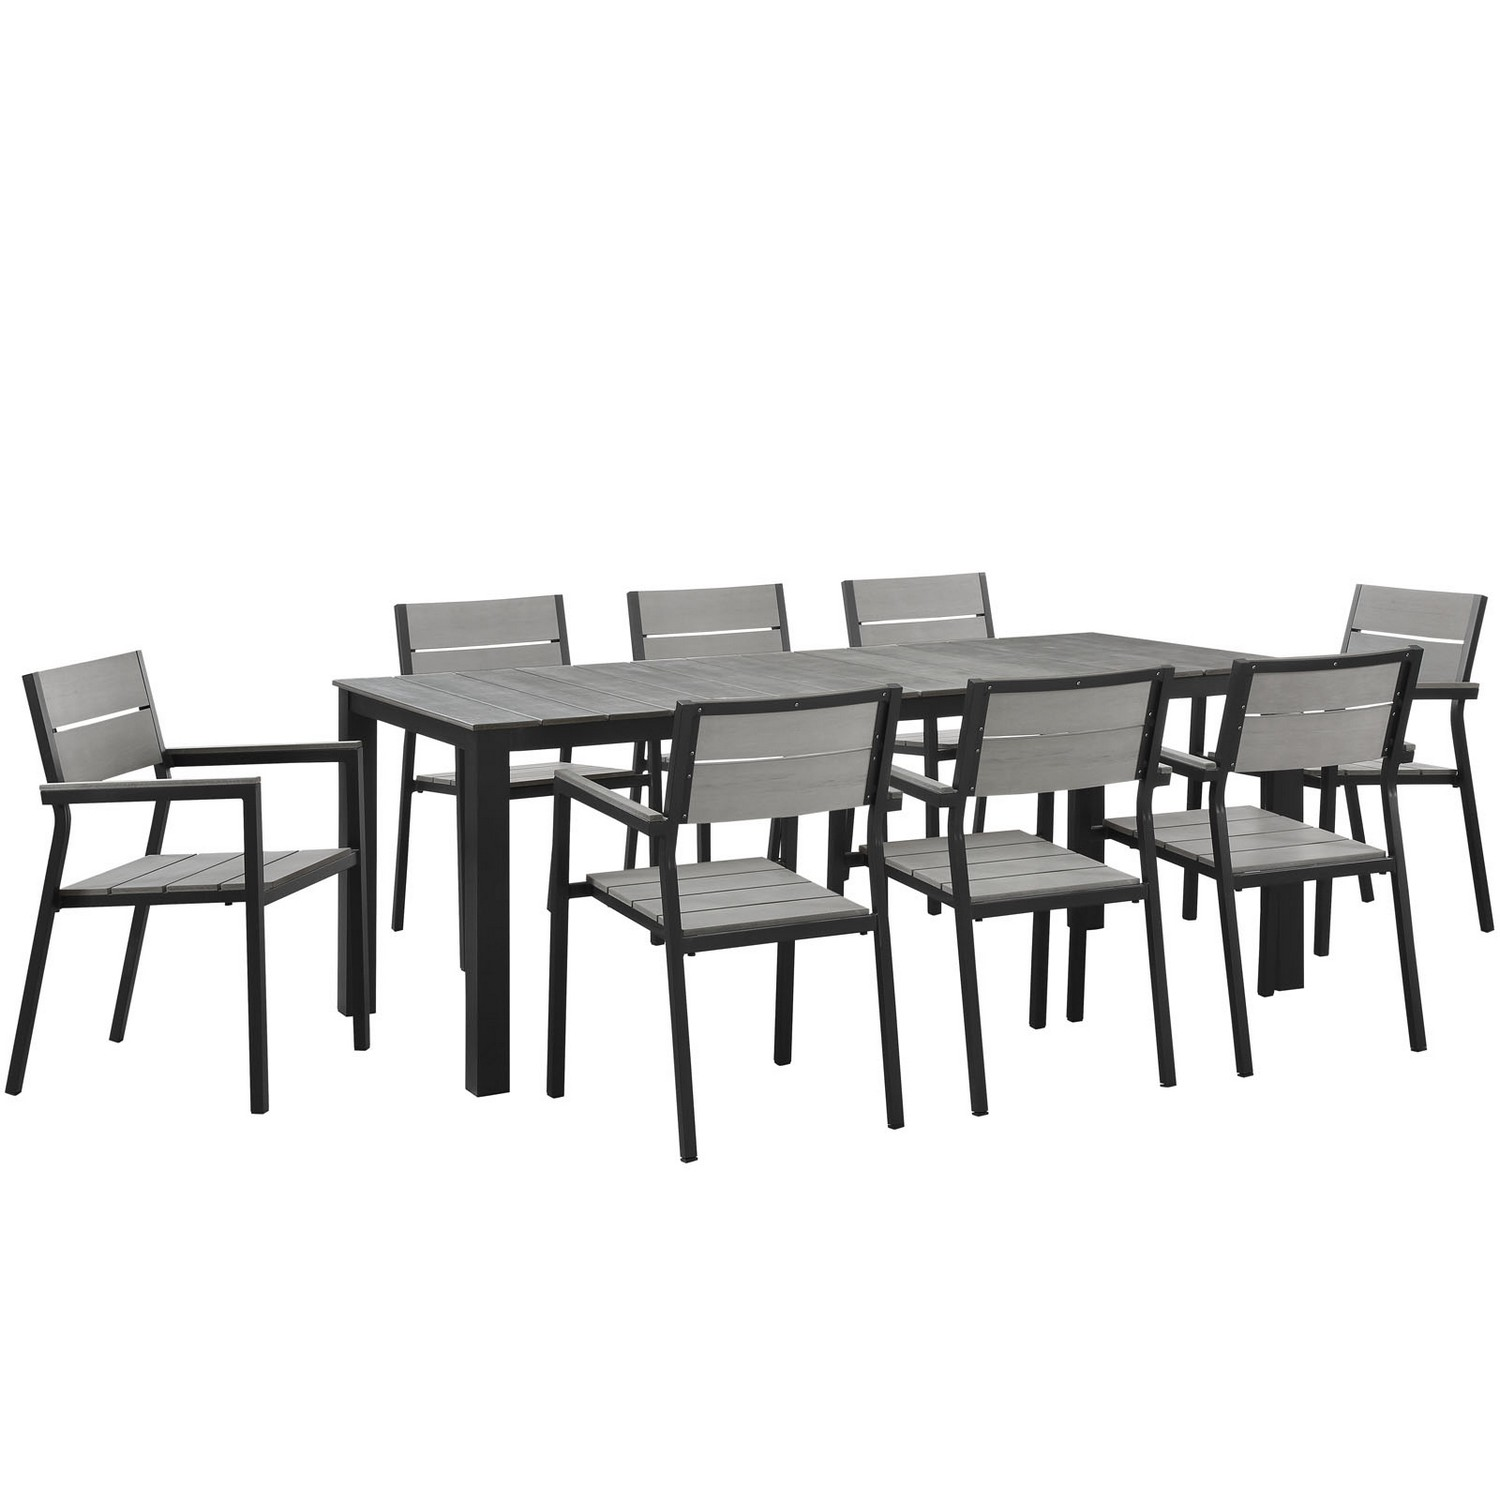 Modway Maine 9 Piece Outdoor Patio Dining Set - Brown/Gray